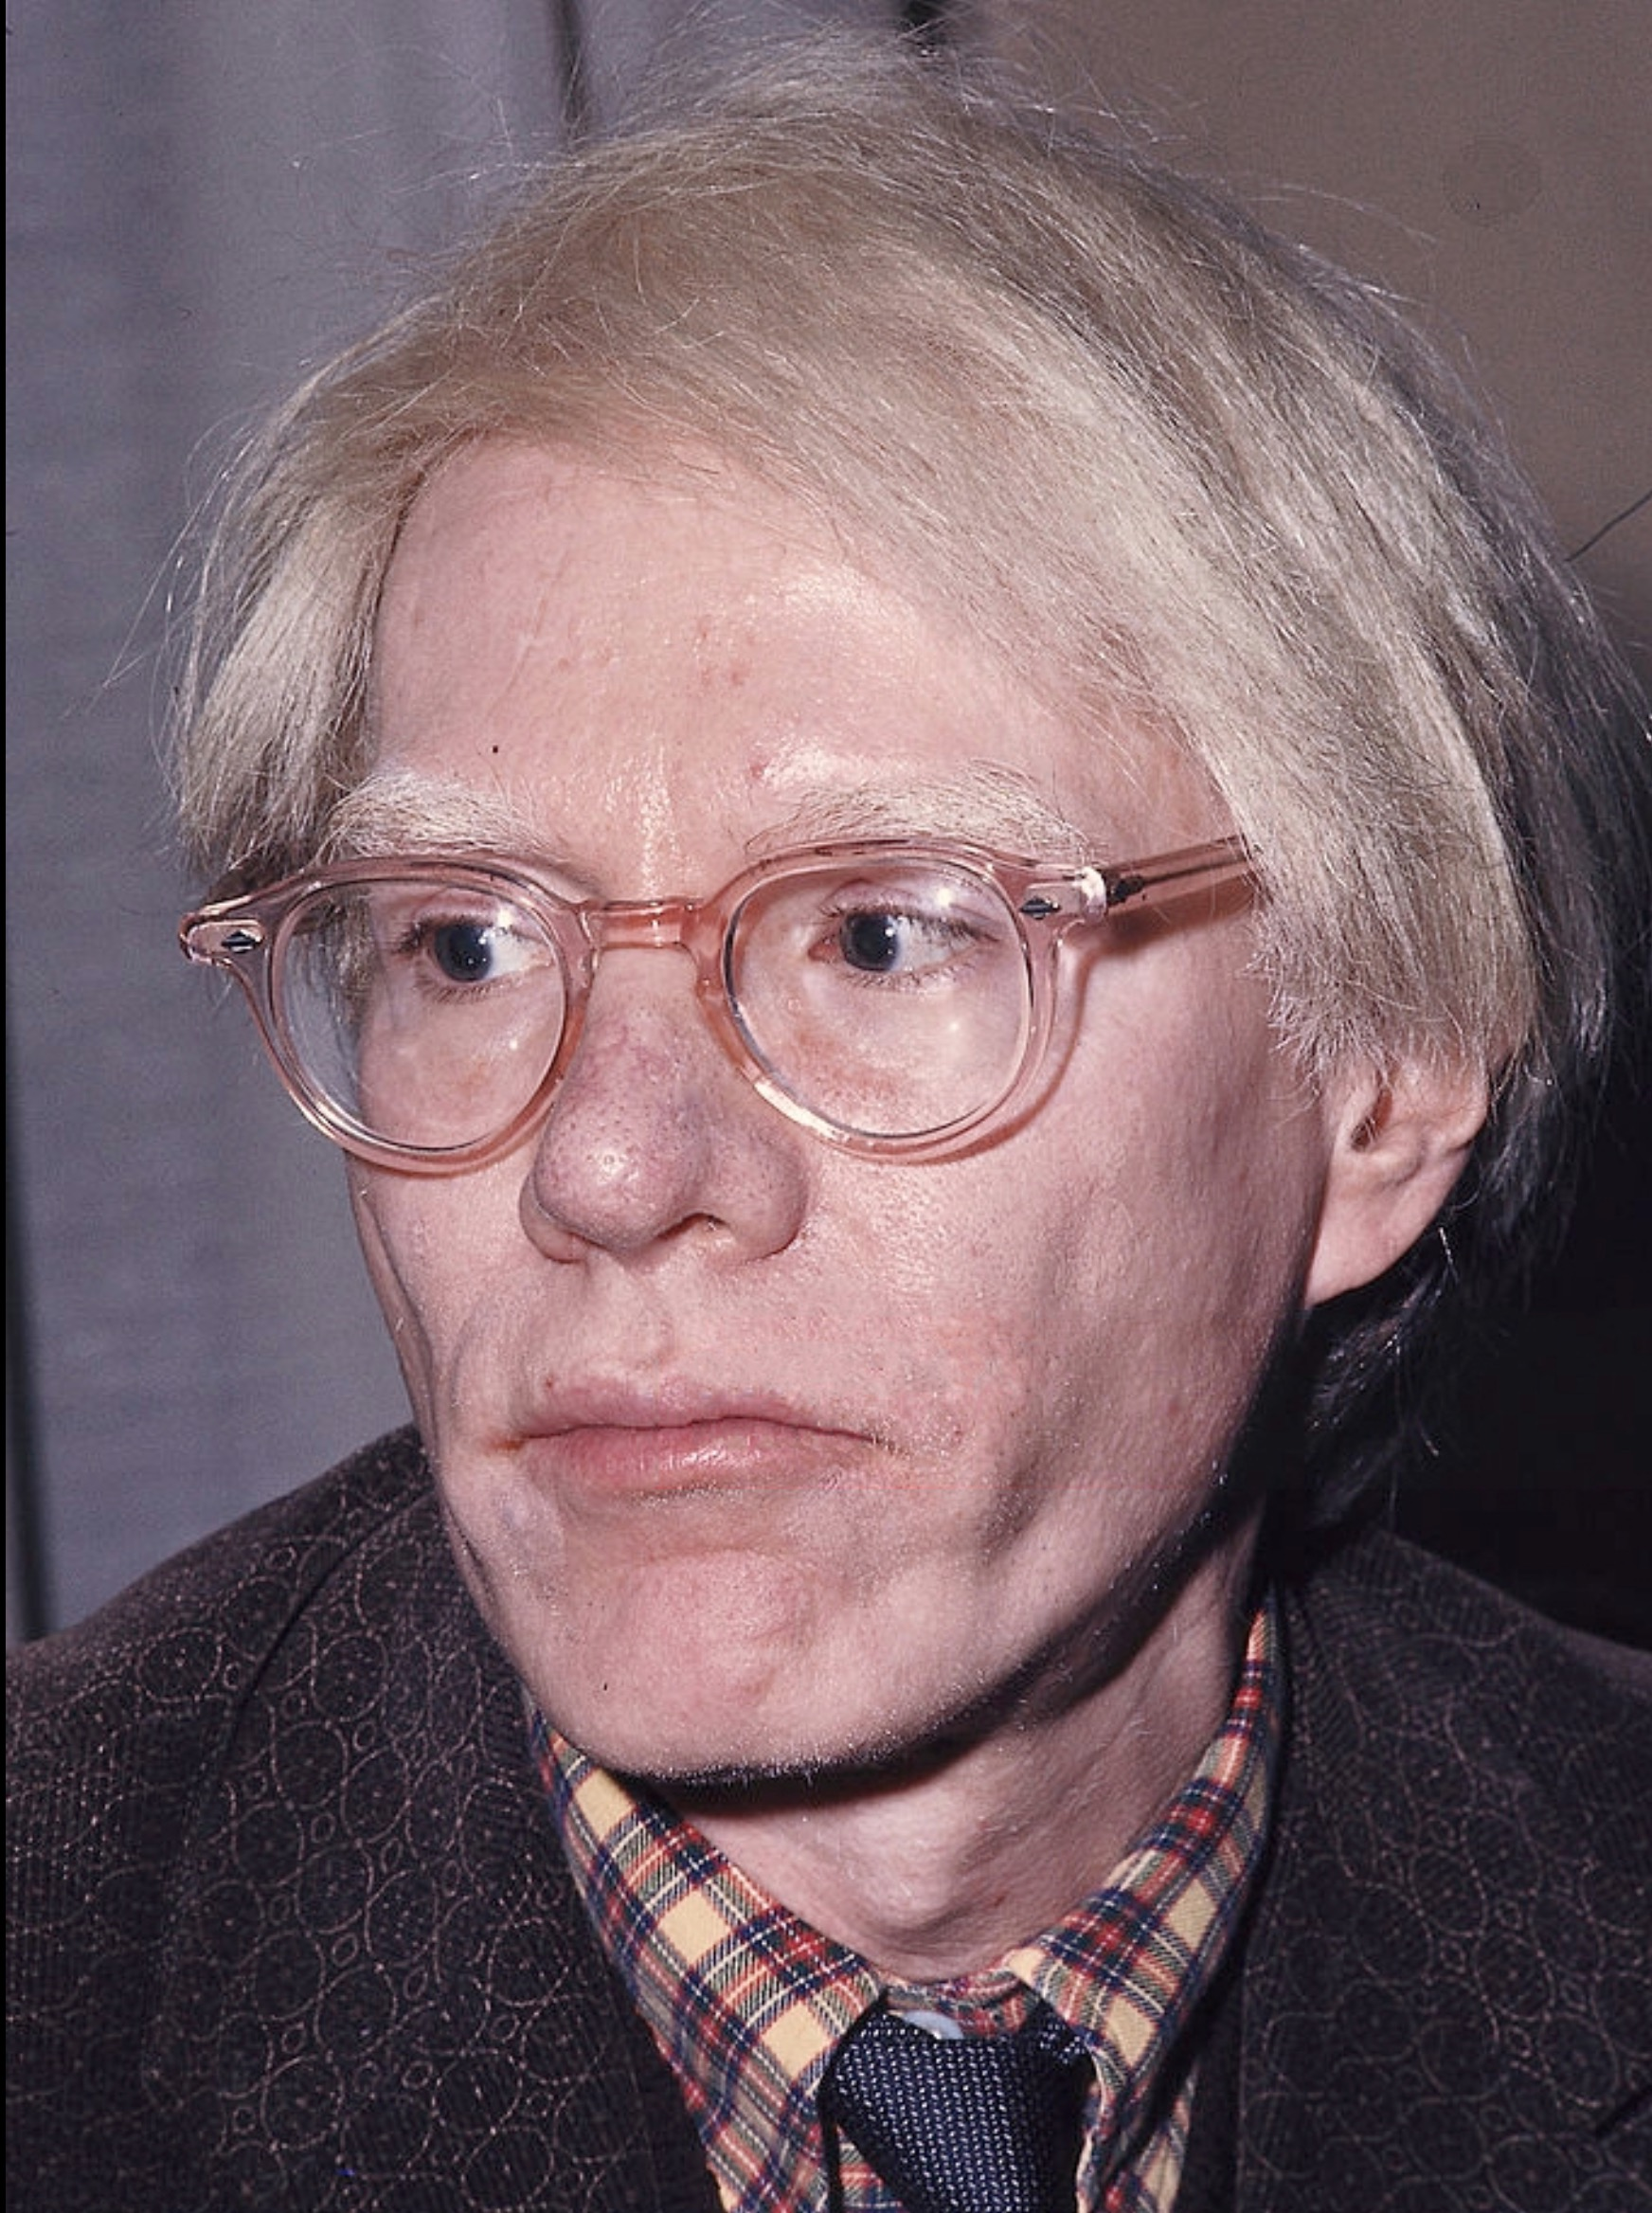 The Lives of Artists – Andy Warhol